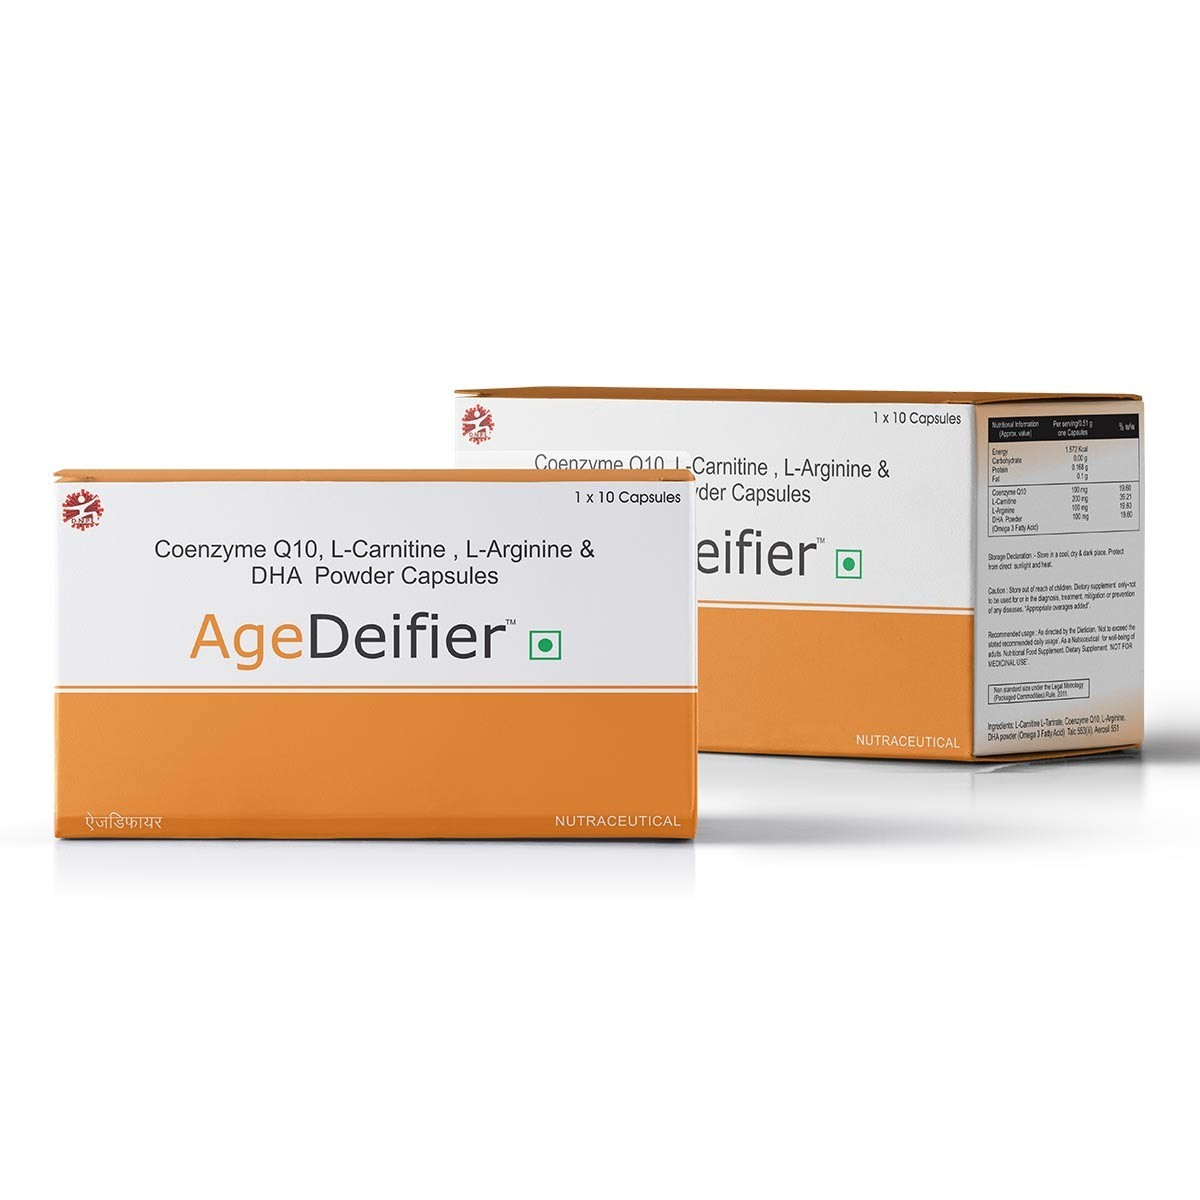 AgeDeifier The best anti ageing supplement in India